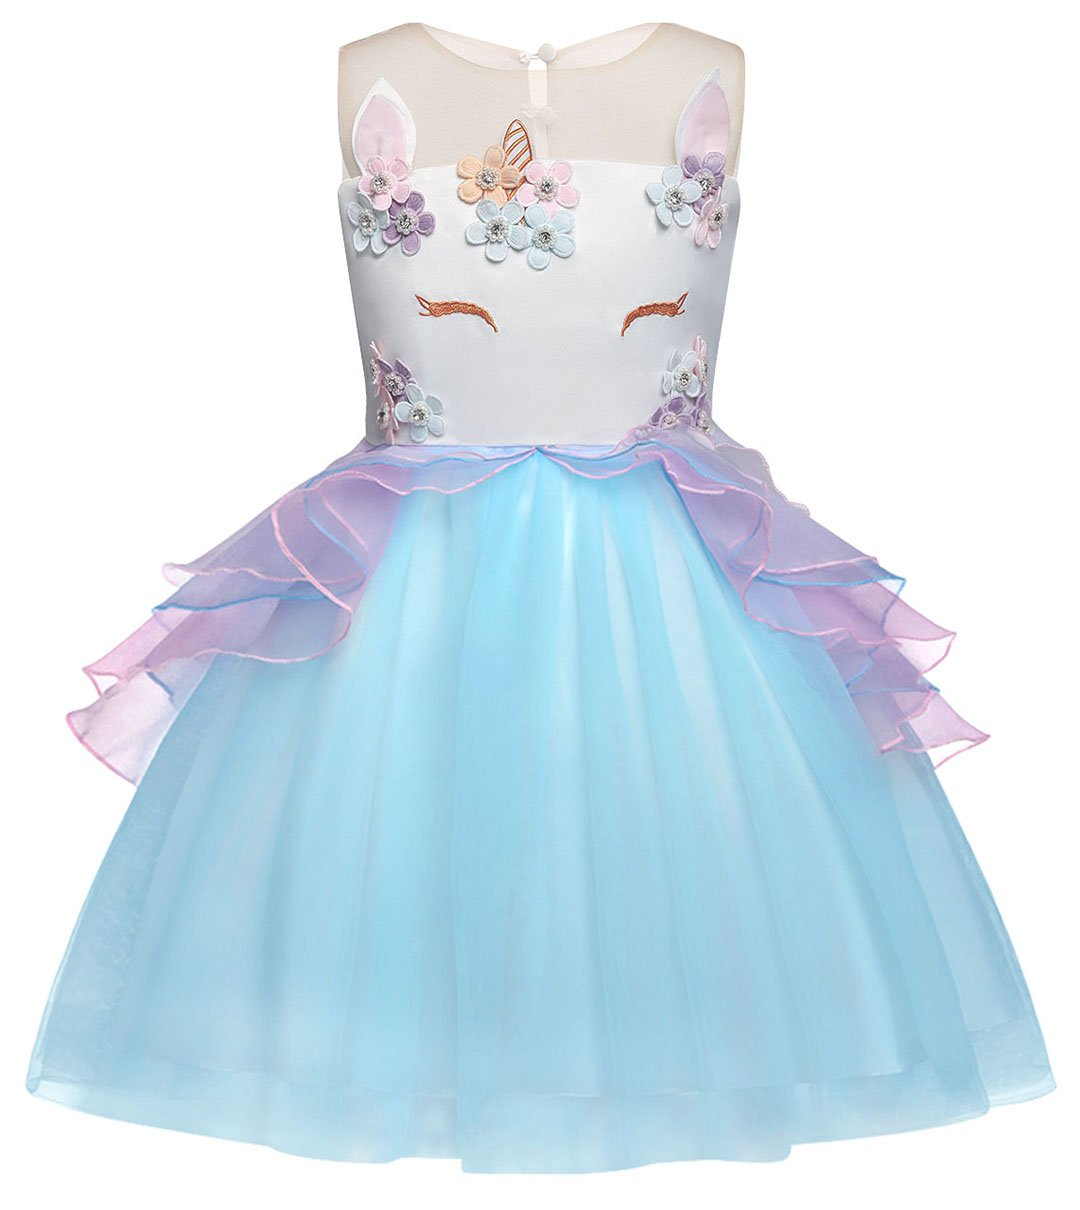 Cotrio Baby Girls Unicorn Costume Dress Pageant Party Dresses Flower Evening Gowns Tutu Dress Size 3T (2-3Yrs, Blue)